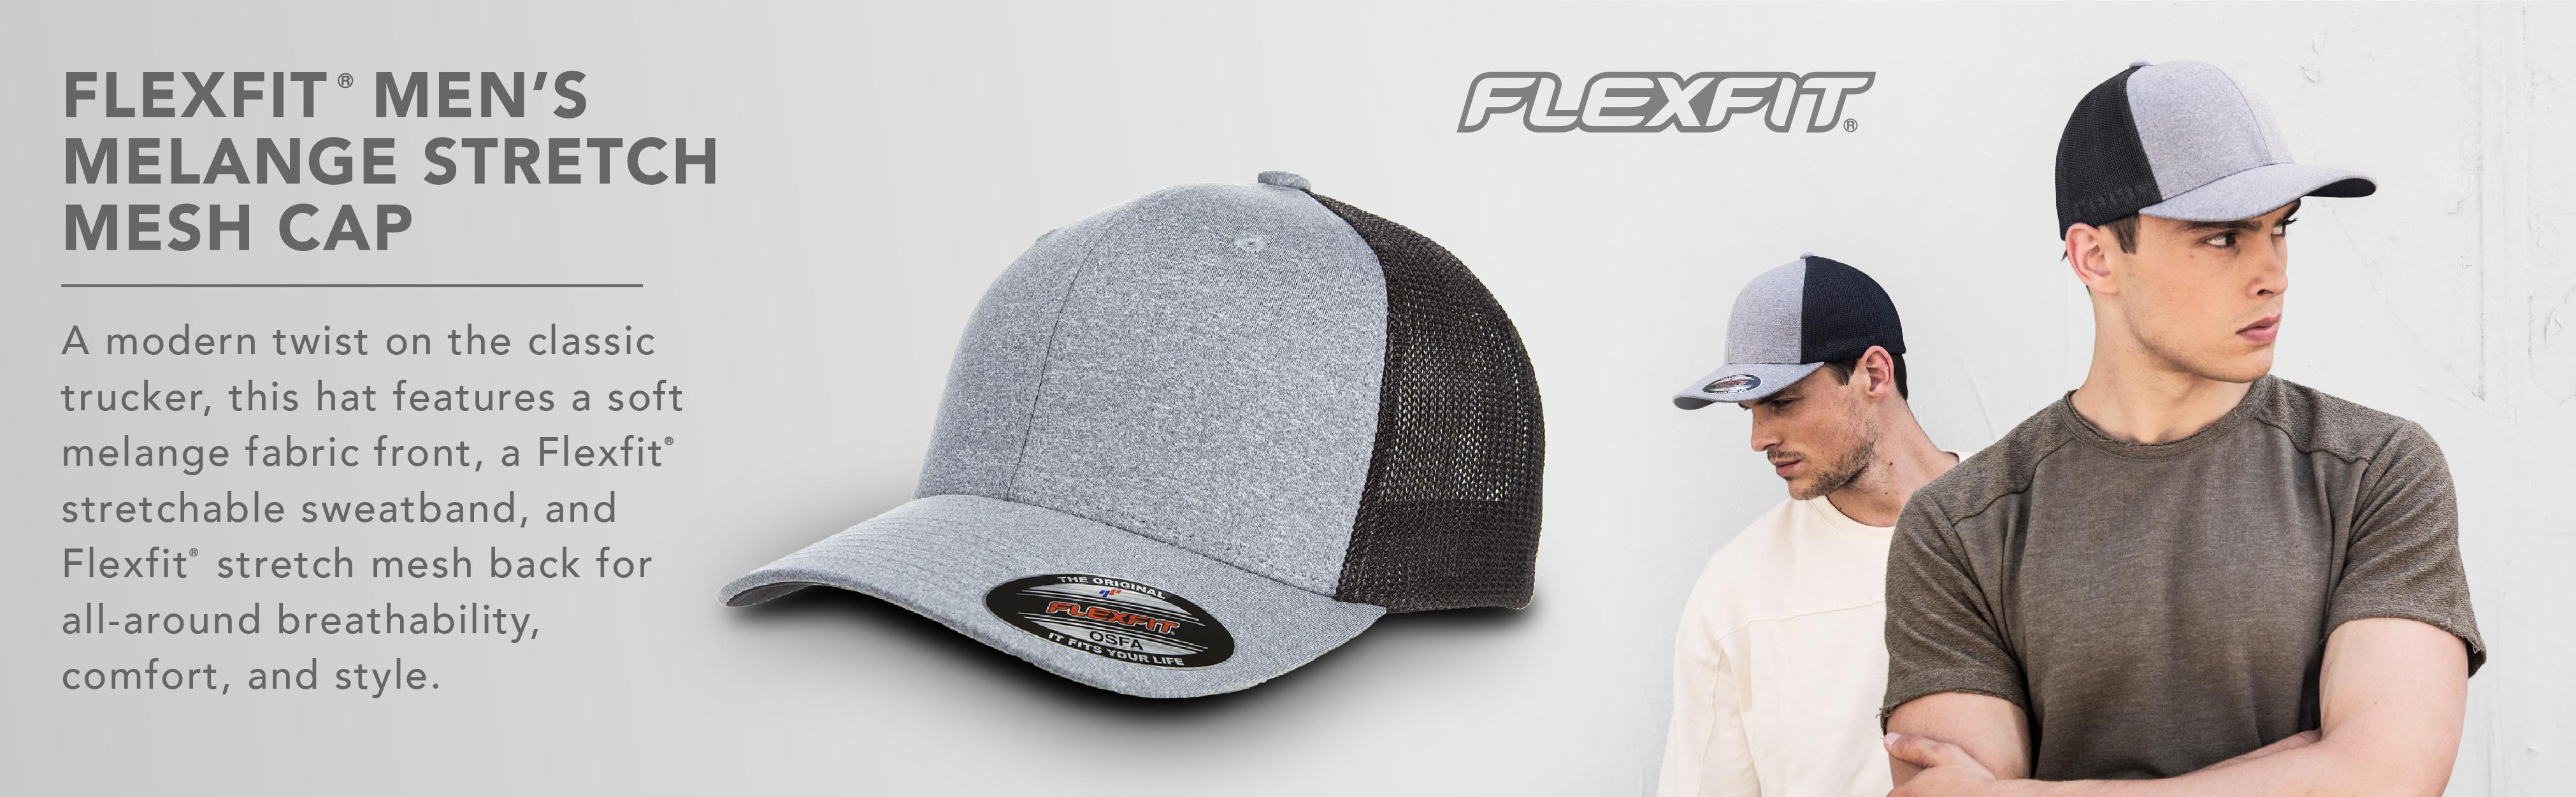 1d01f339 Flexfit Mens 6311 Melange Stretch Mesh Cap Hat - Gray - One Size ...